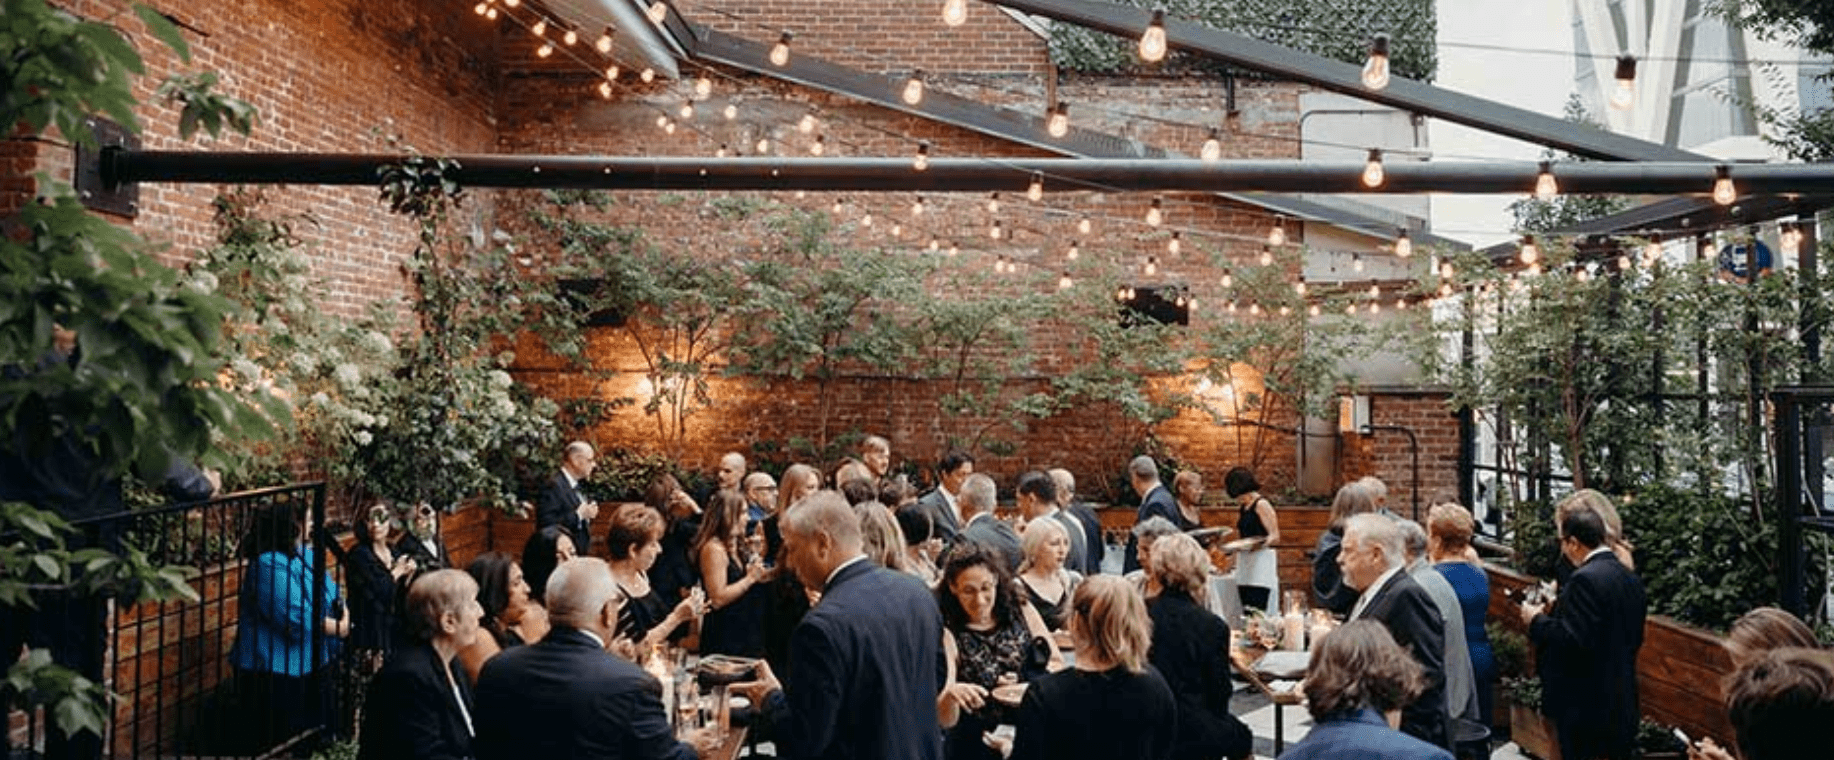 Wythe Hotel - New York City Event Venues